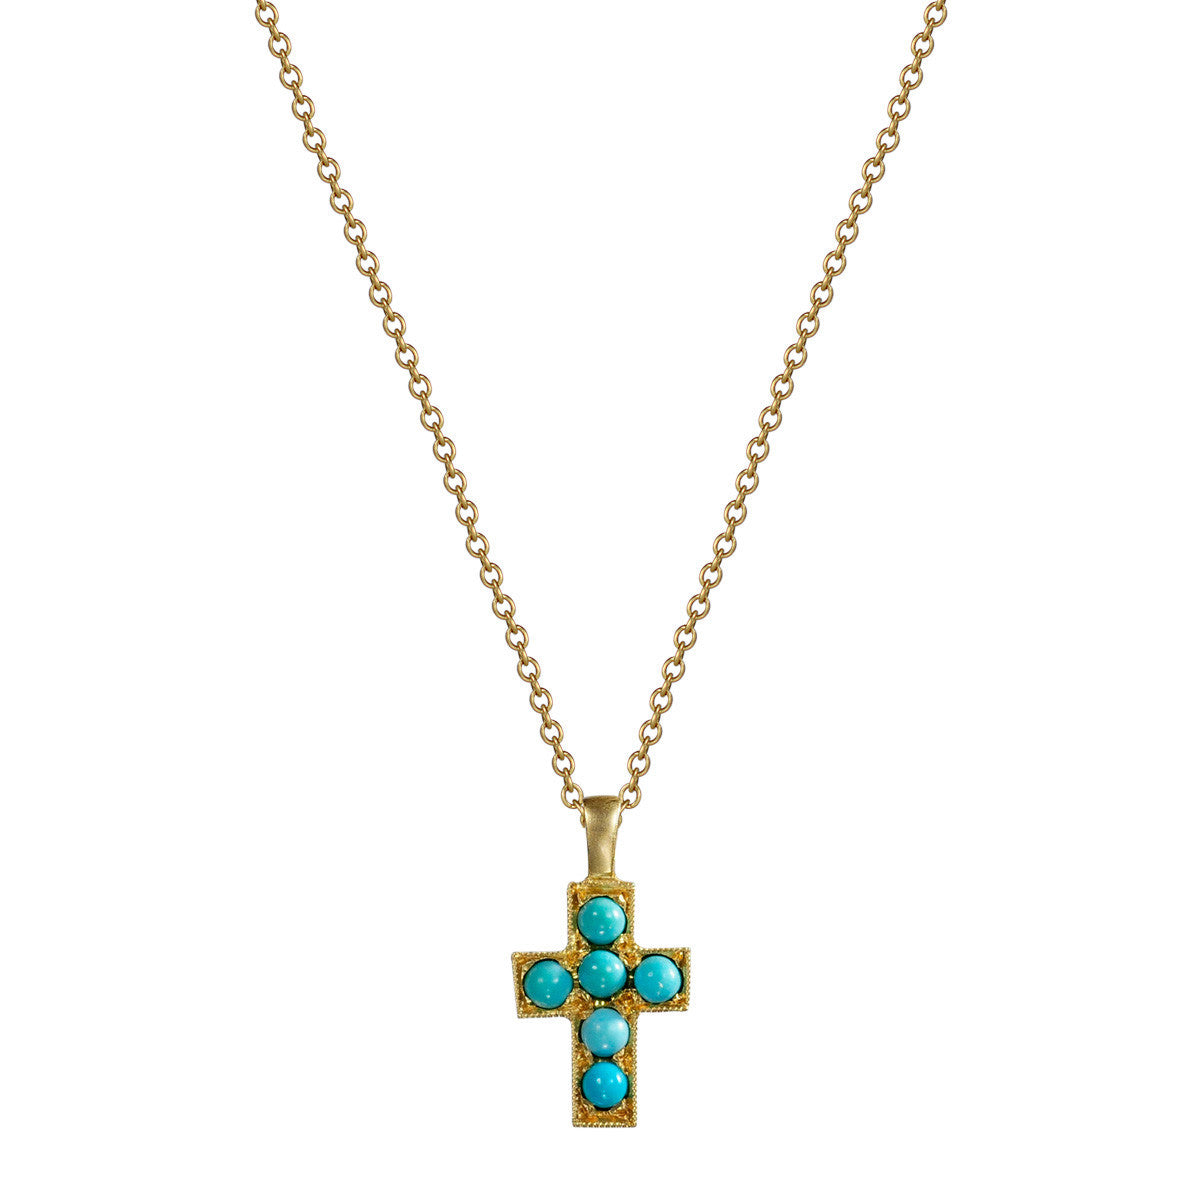 18k gold cross pendant with turquoise stones mero 18k gold cross pendant with turquoise stones aloadofball Gallery